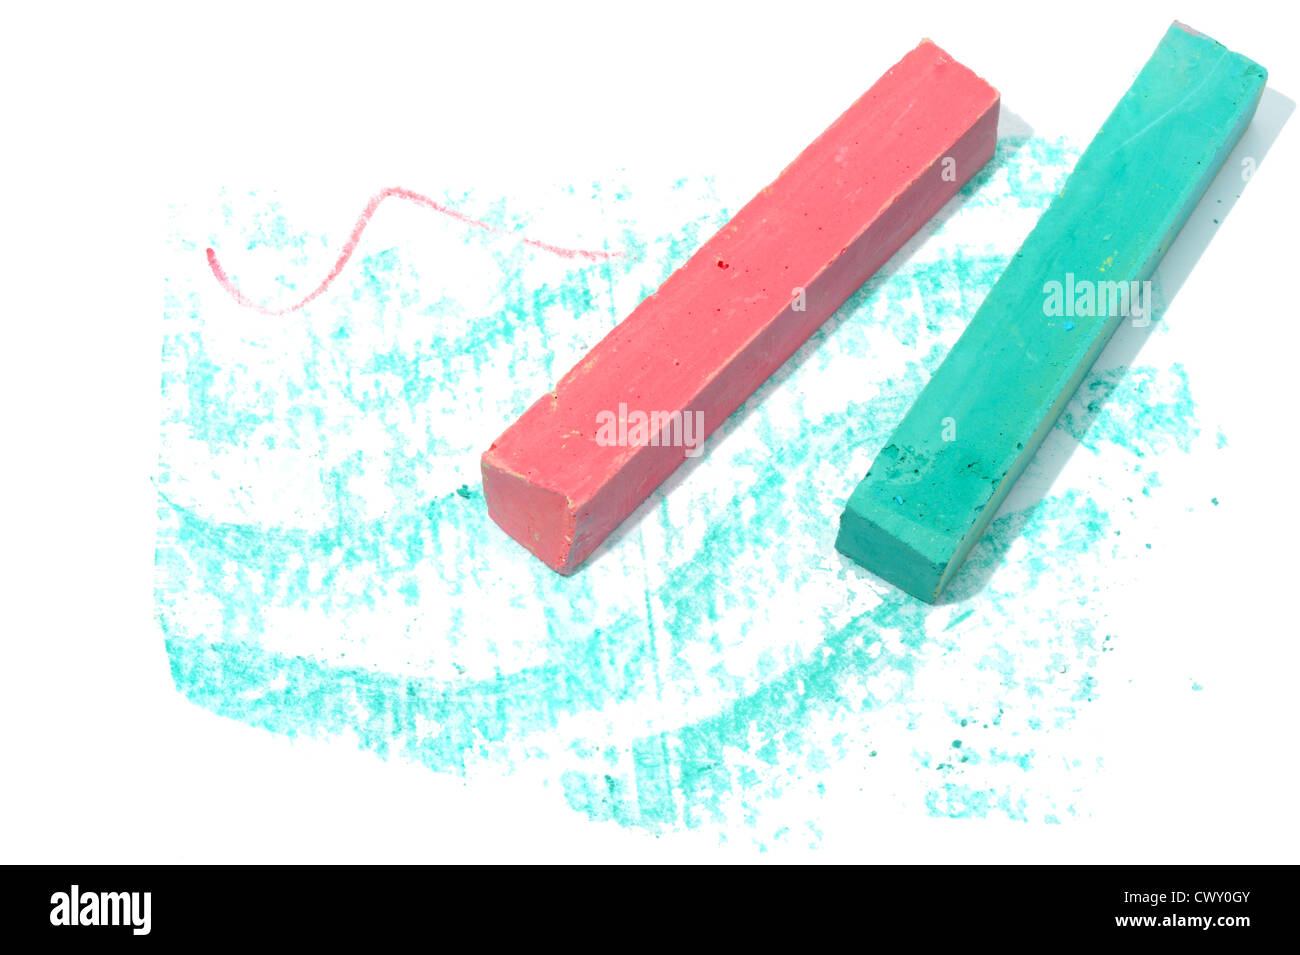 Colored crayon chalk on a white background isolated. - Stock Image